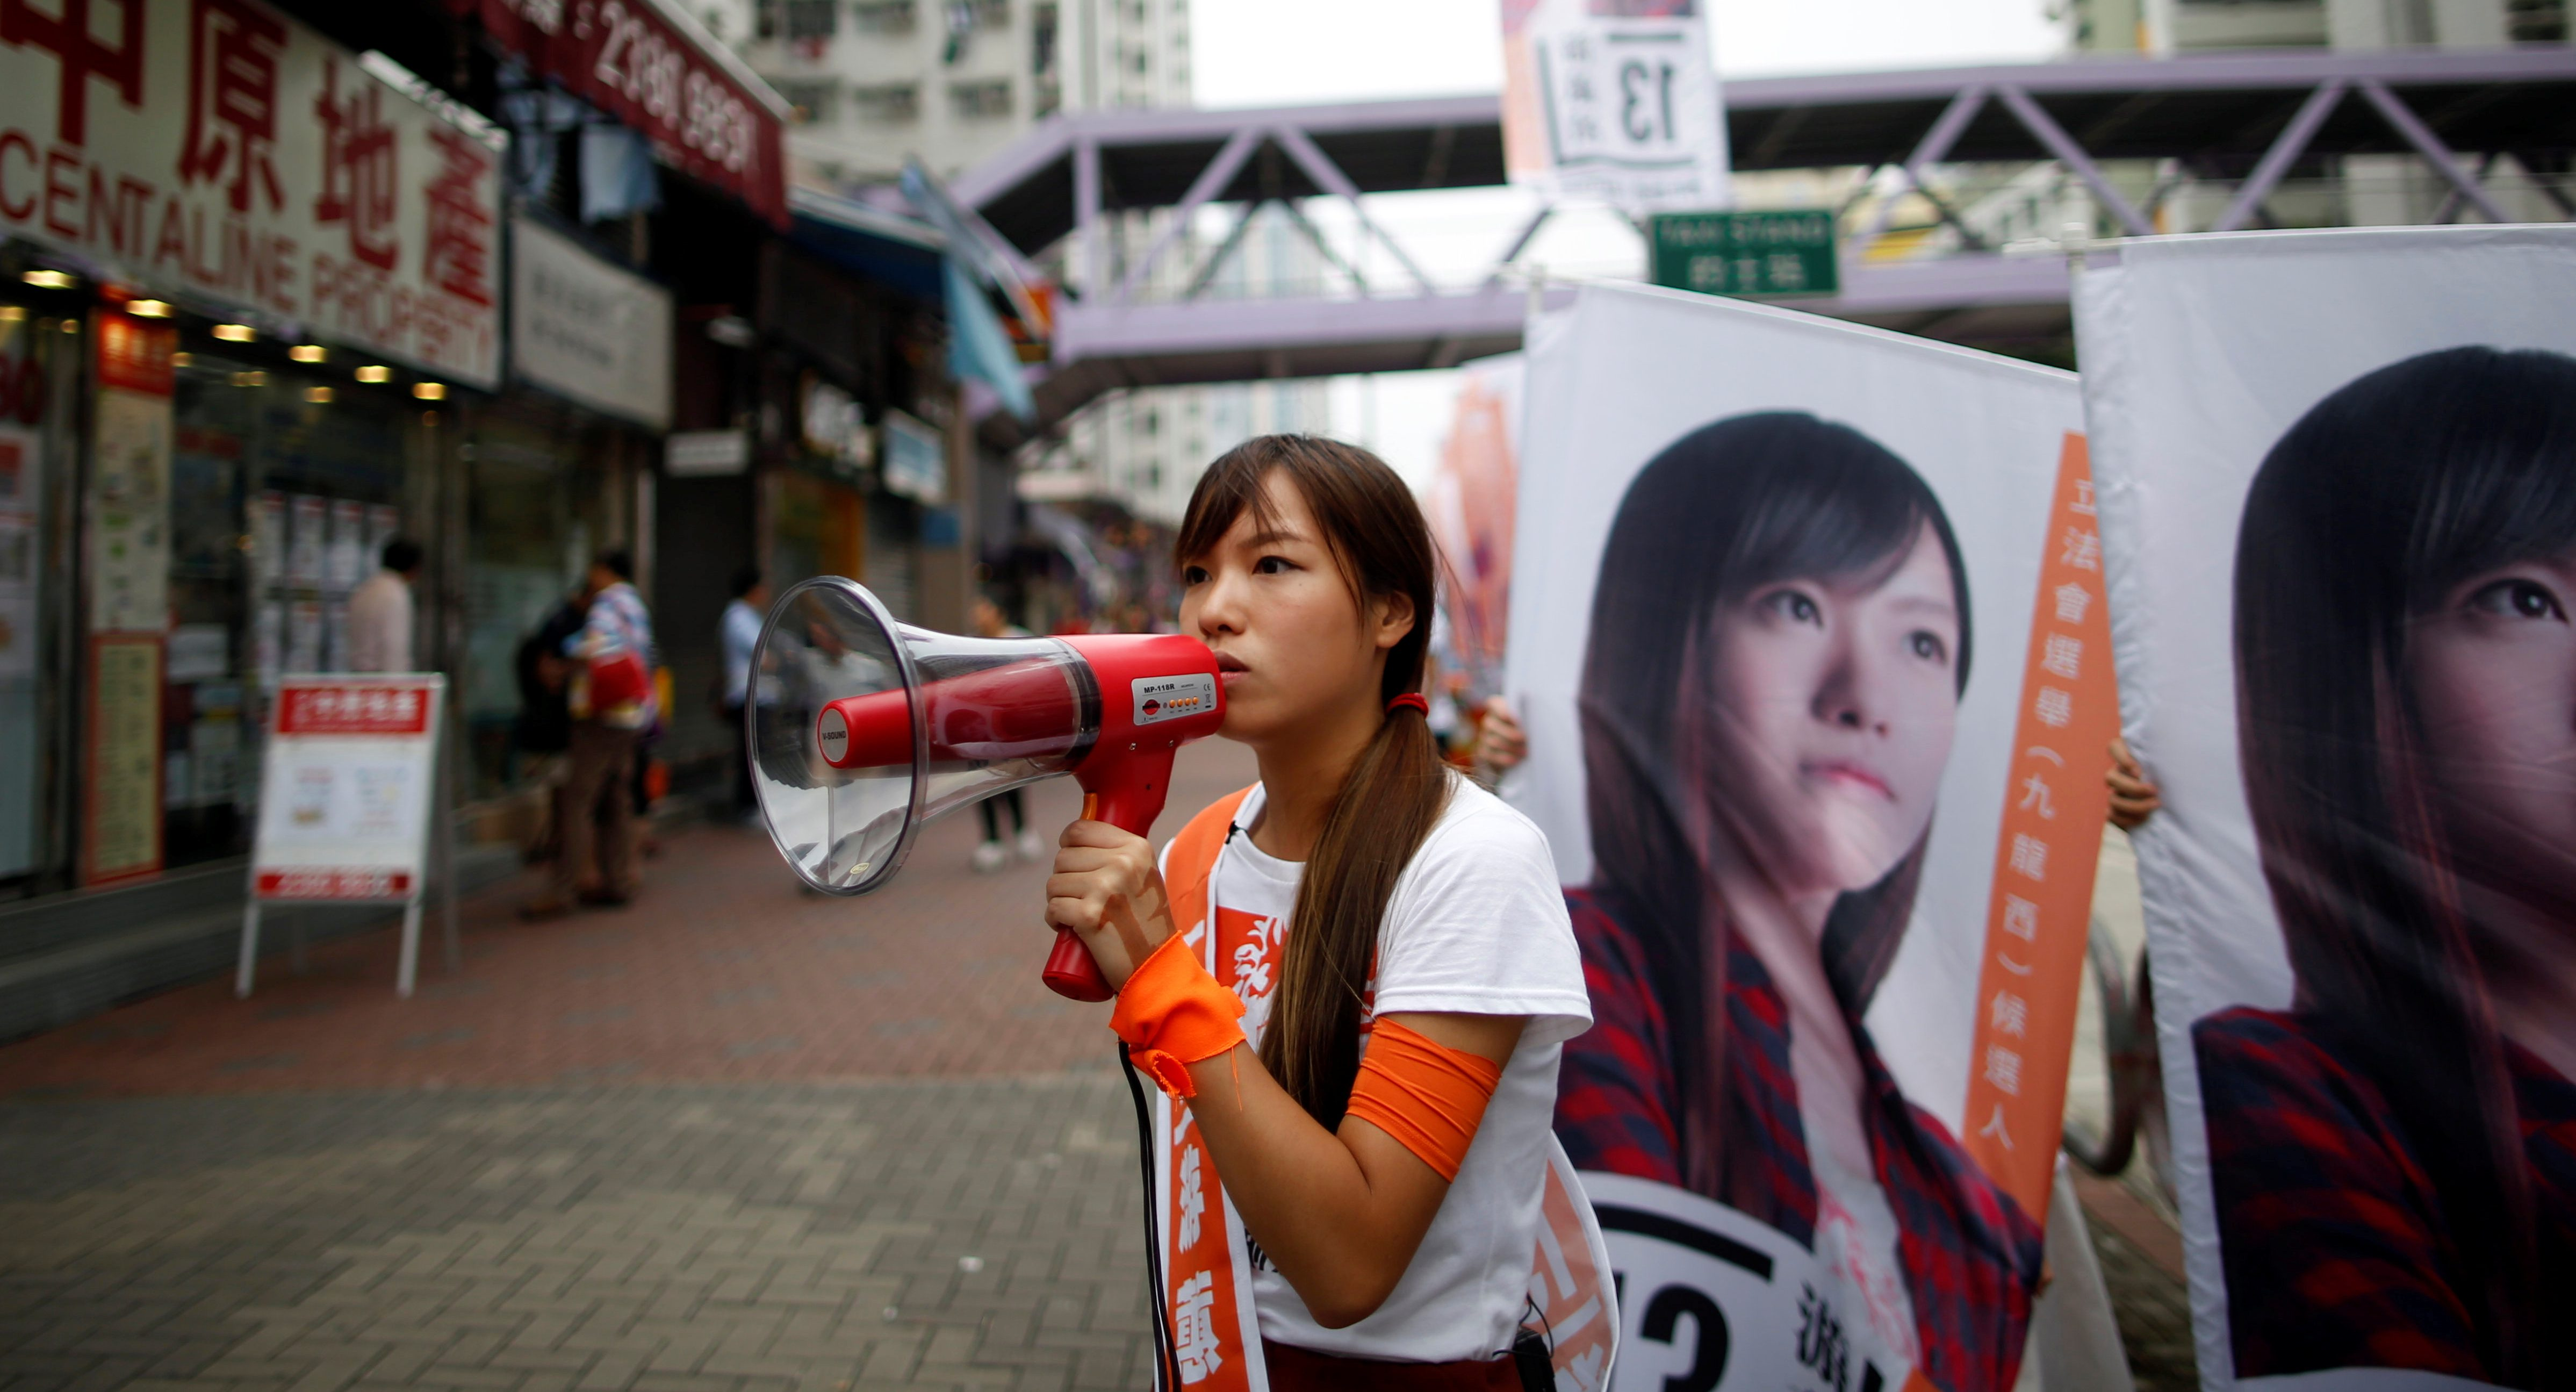 Candidate Yau Wai-ching, member of political group Youngspiration, campaigns on the election day of the Legislative Council in Hong Kong